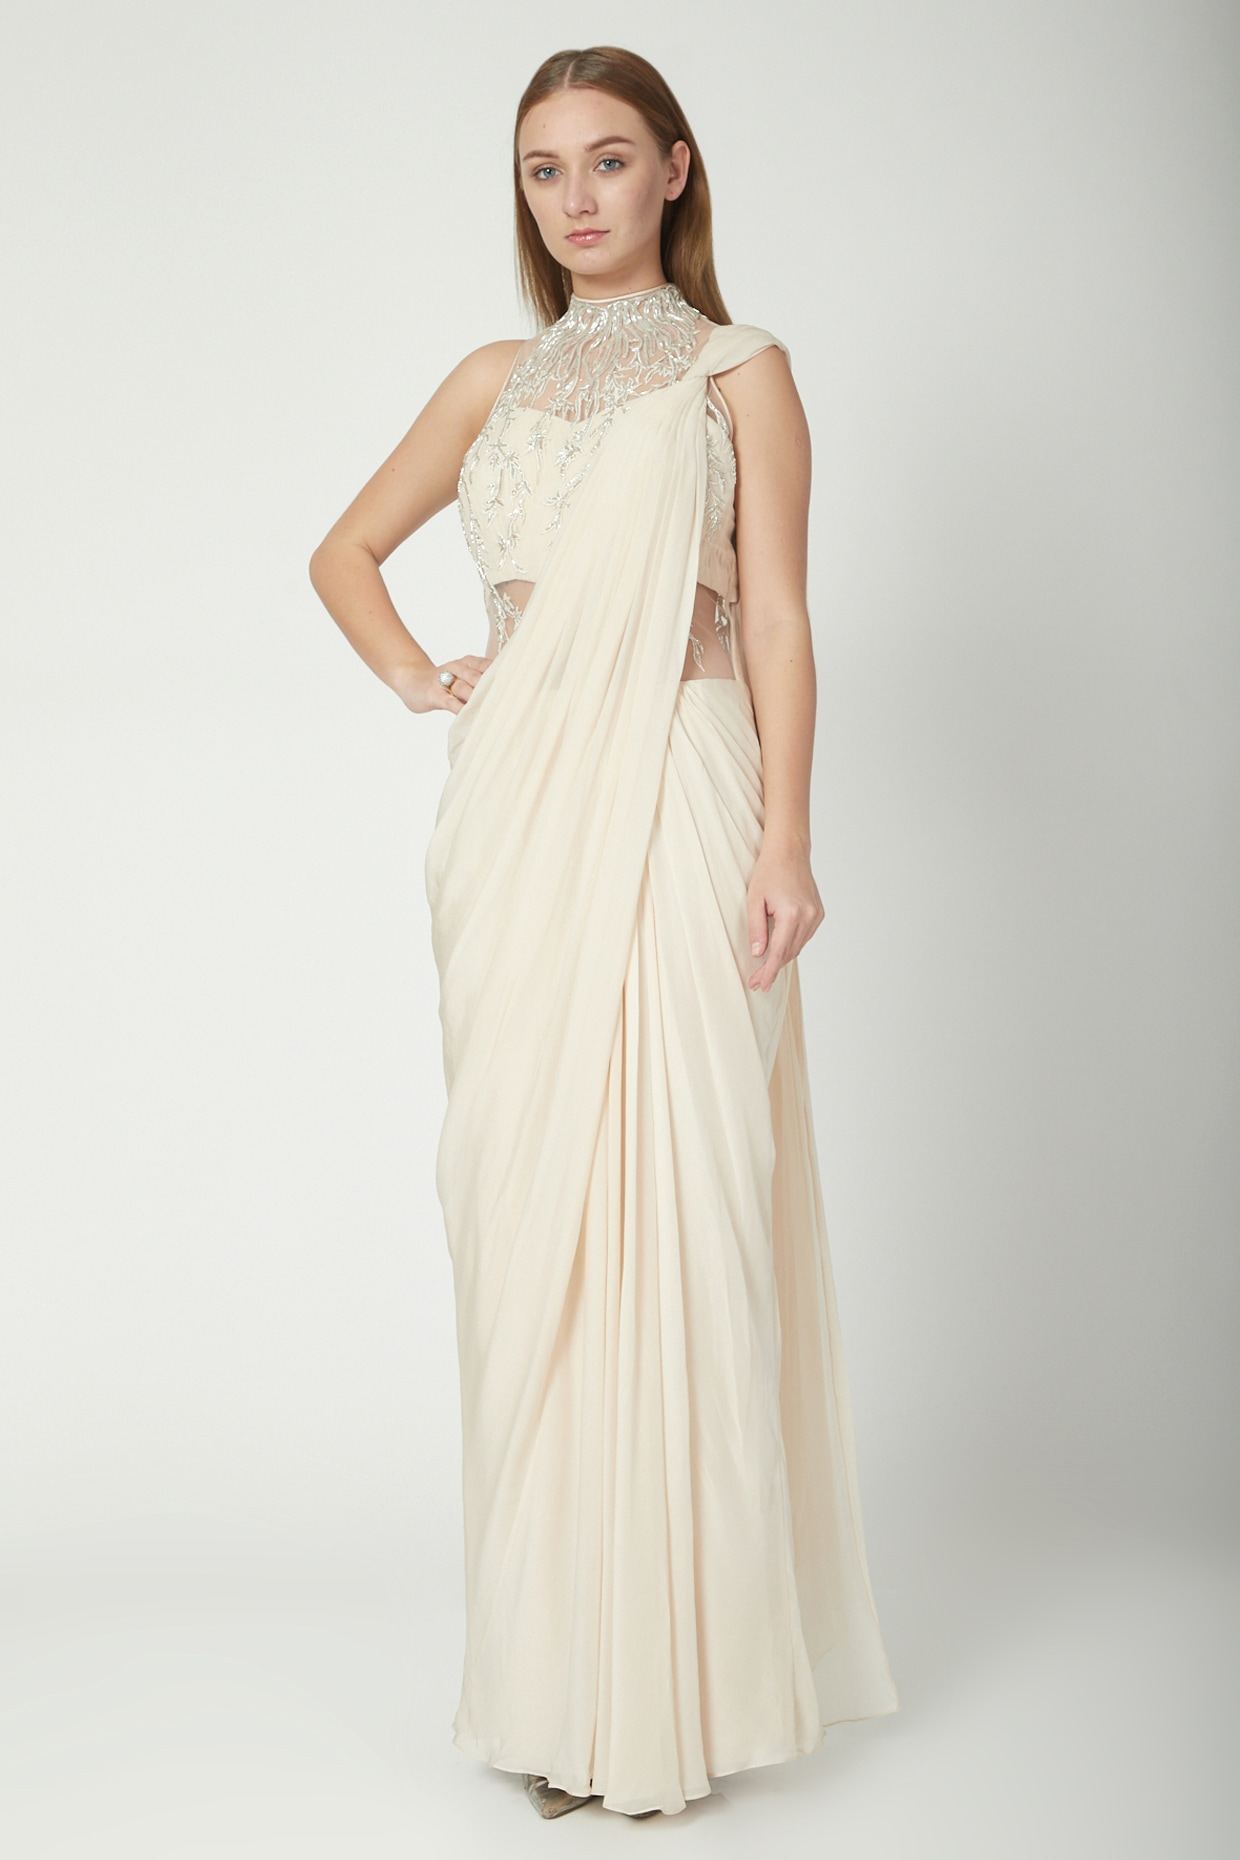 White Embroidered Draped Saree Gown Design By Gaurav Gupta At Pernia S Pop Up Shop